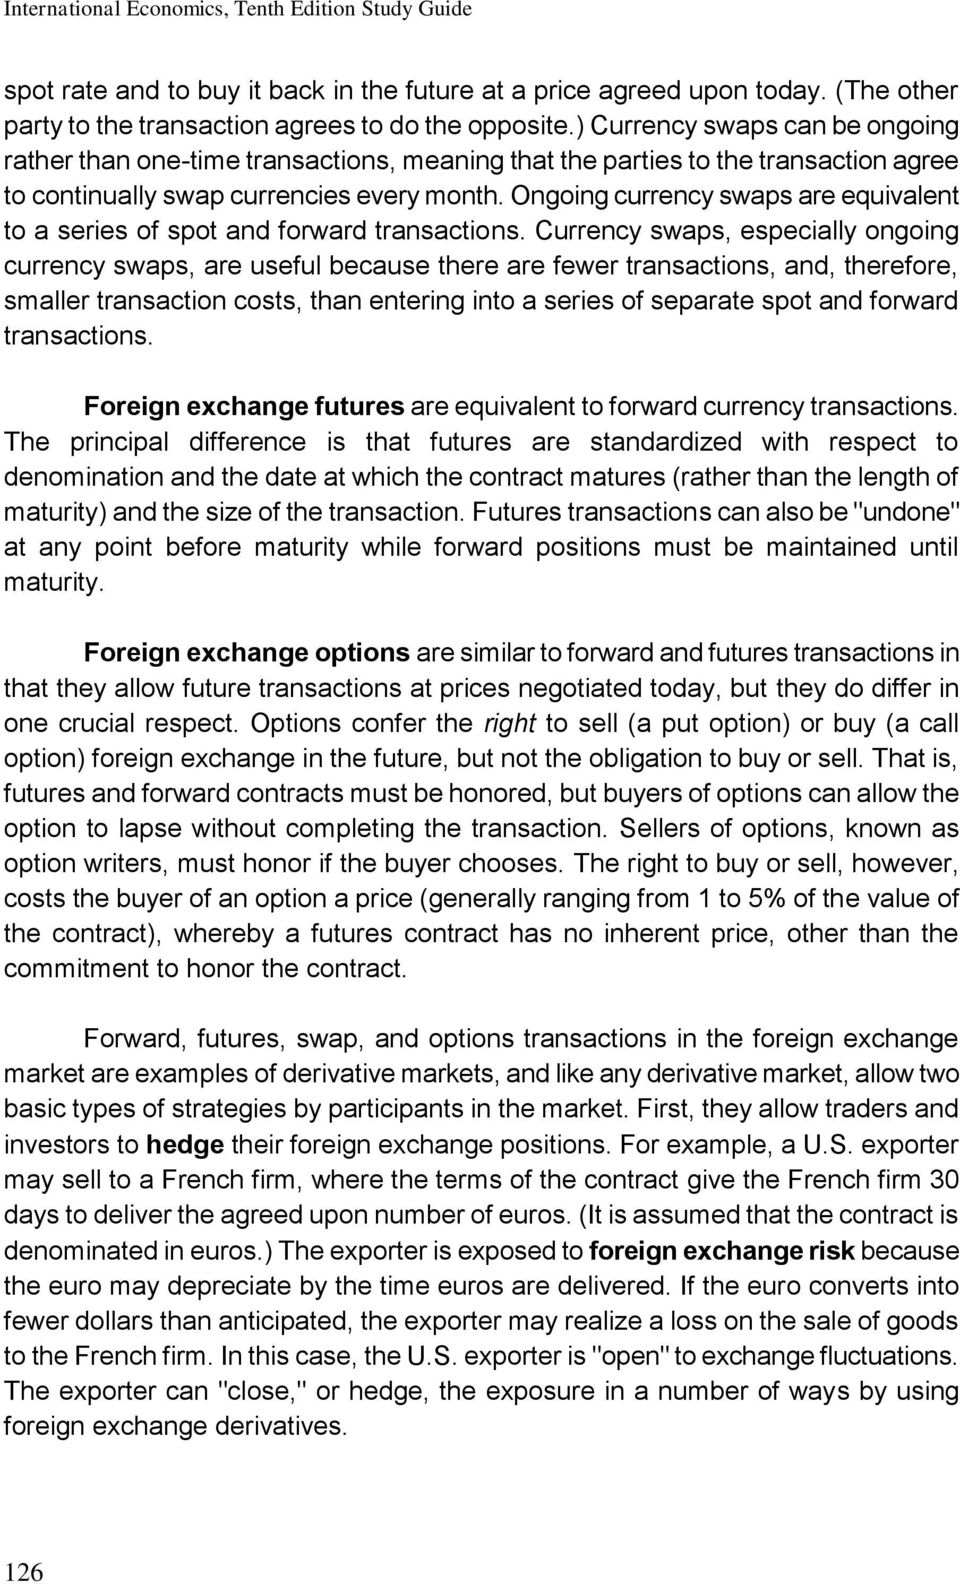 Ongoing currency swaps are equivalent to a series of spot and forward transactions.